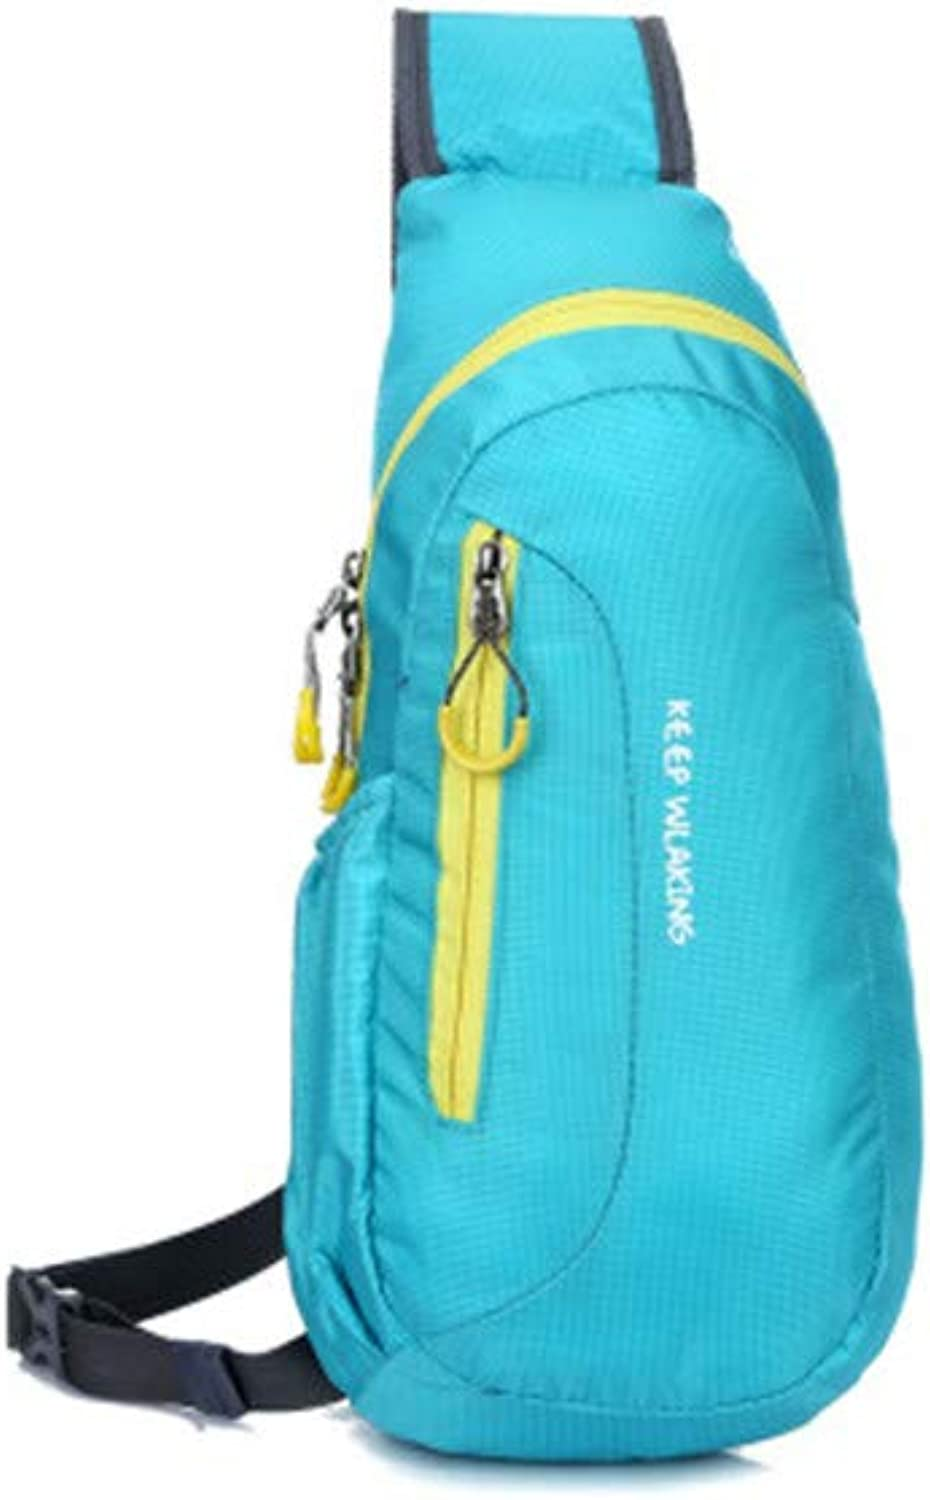 New Chest Bag Outdoor Sports Shoulder Bag Outdoor Sports and Leisure Single Backpack Travel Chest Bag,Lightblueee